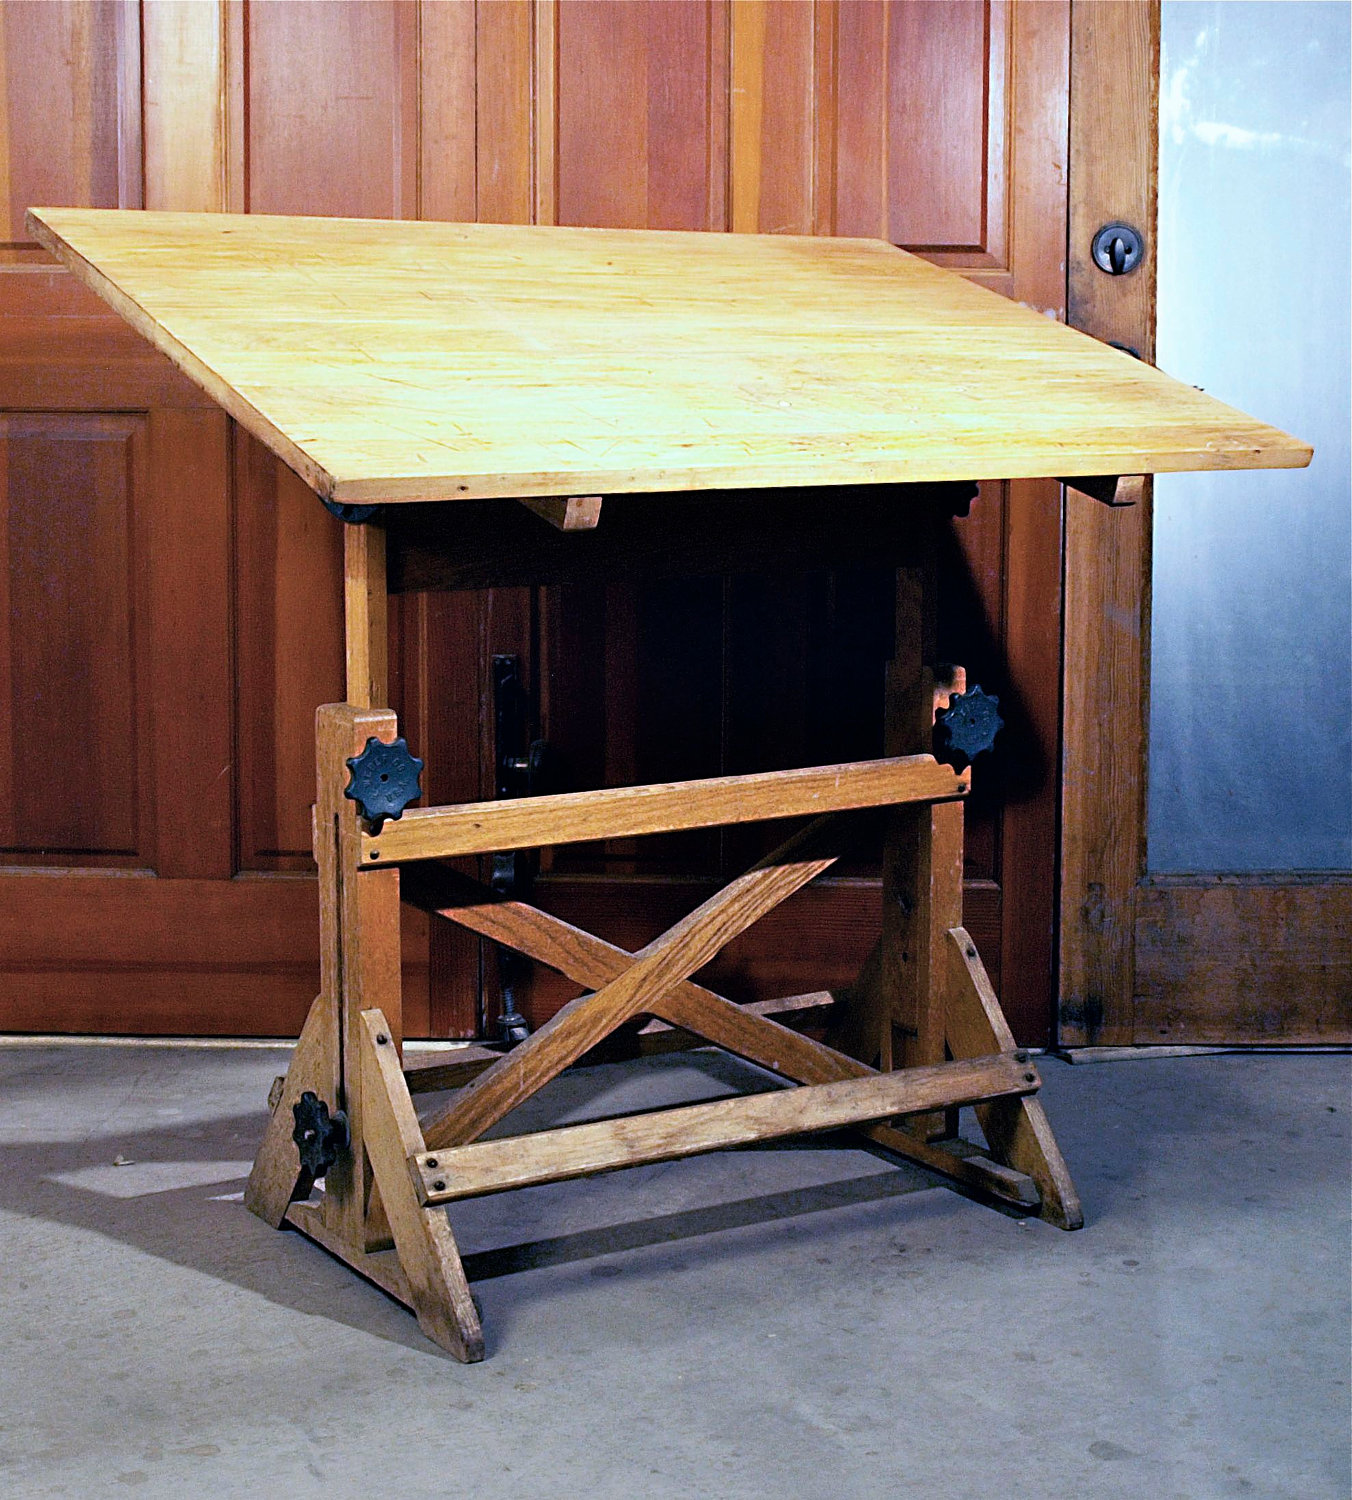 Big Wooden Drafting Table - Old Drafting Table HomesFeed